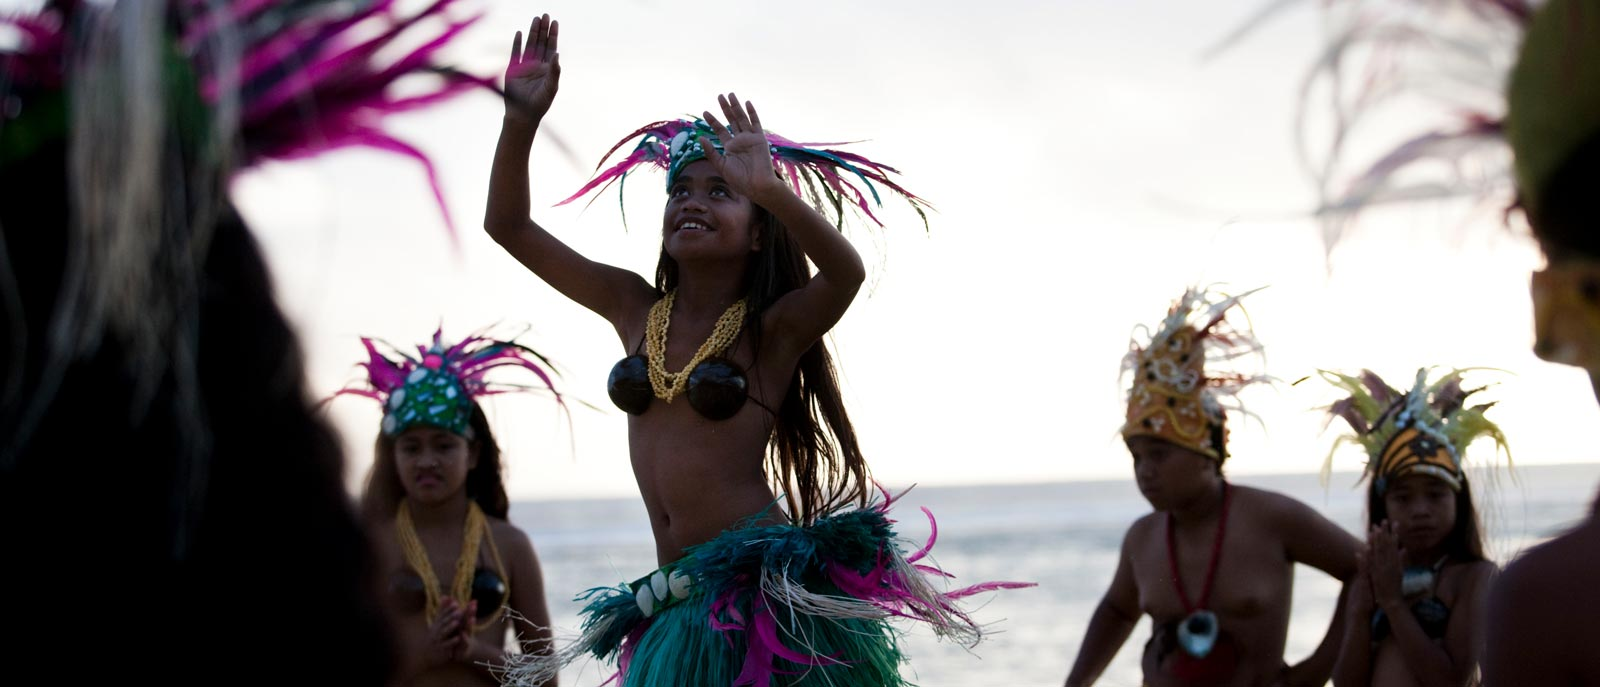 Cook Islands tourism (Photo: Roderick Eime/Flickr)